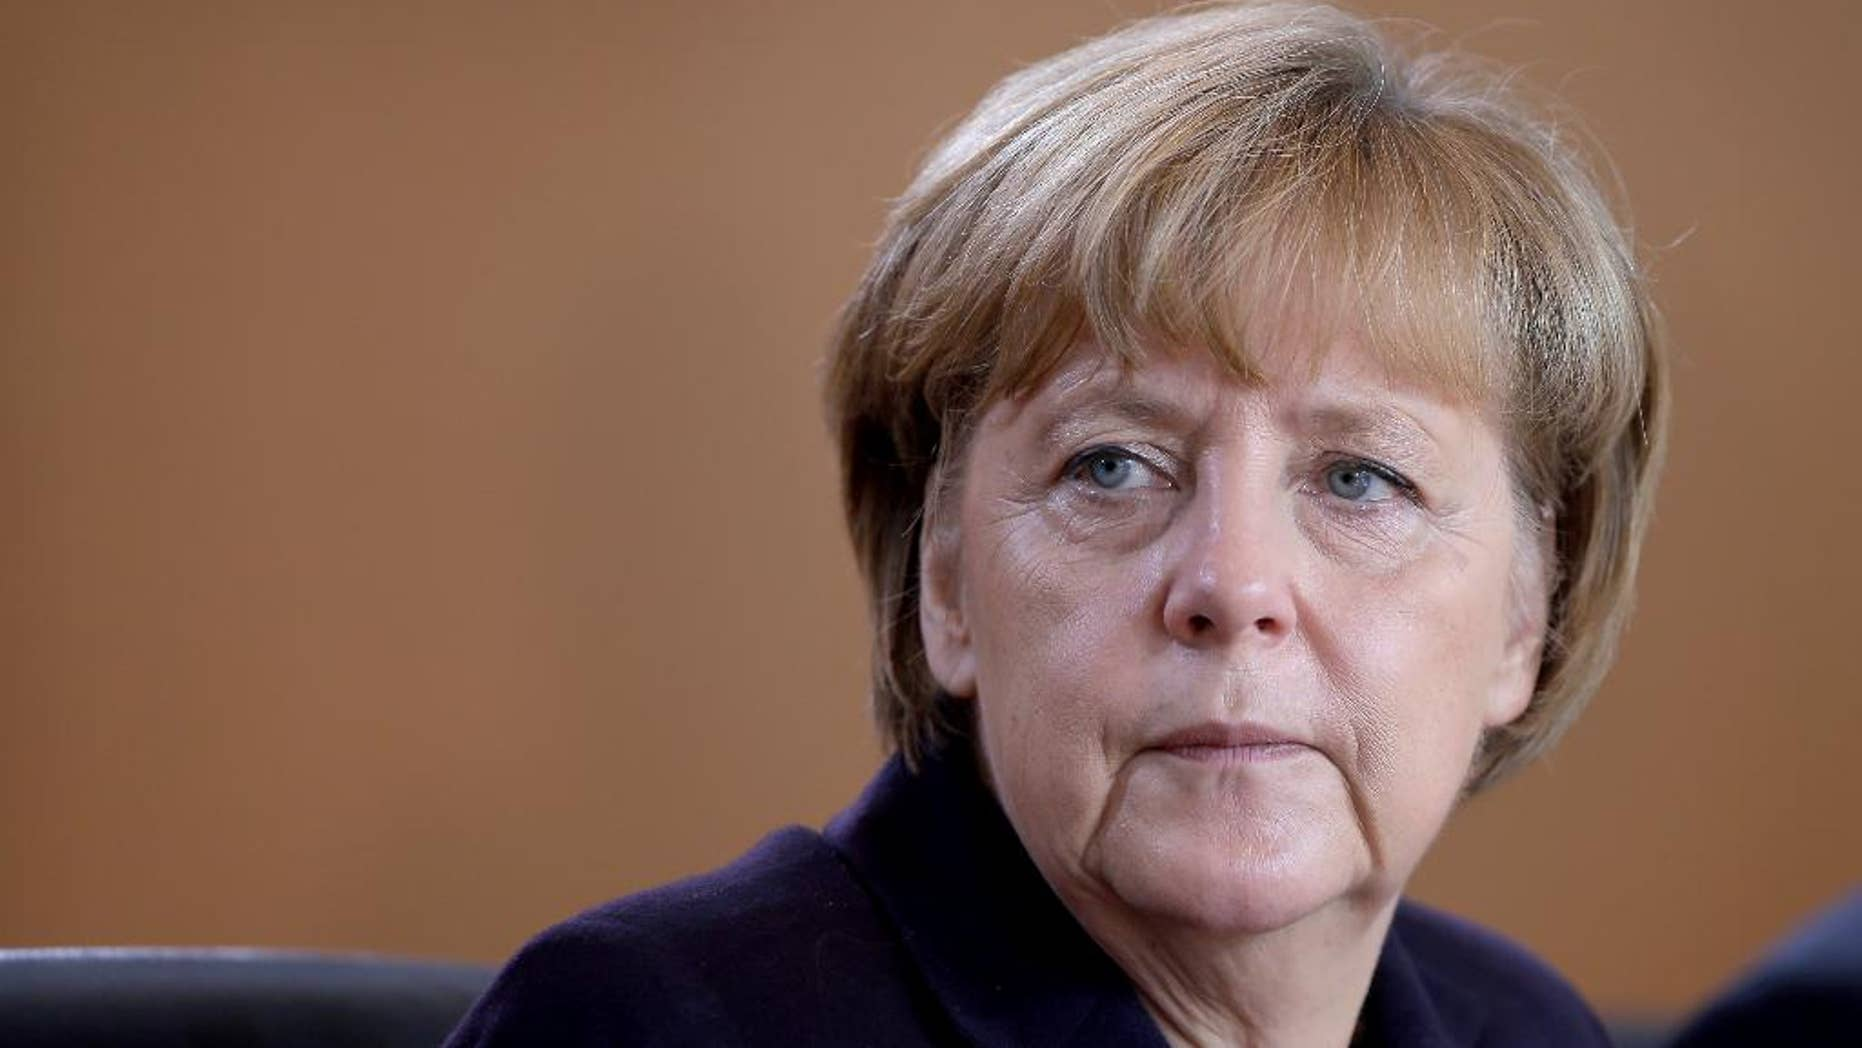 German Chancellor Angela Merkel attends the beginning of the weekly cabinet meeting at the chancellery in Berlin, Germany, Wednesday, Nov. 5, 2014. (AP Photo/Michael Sohn)